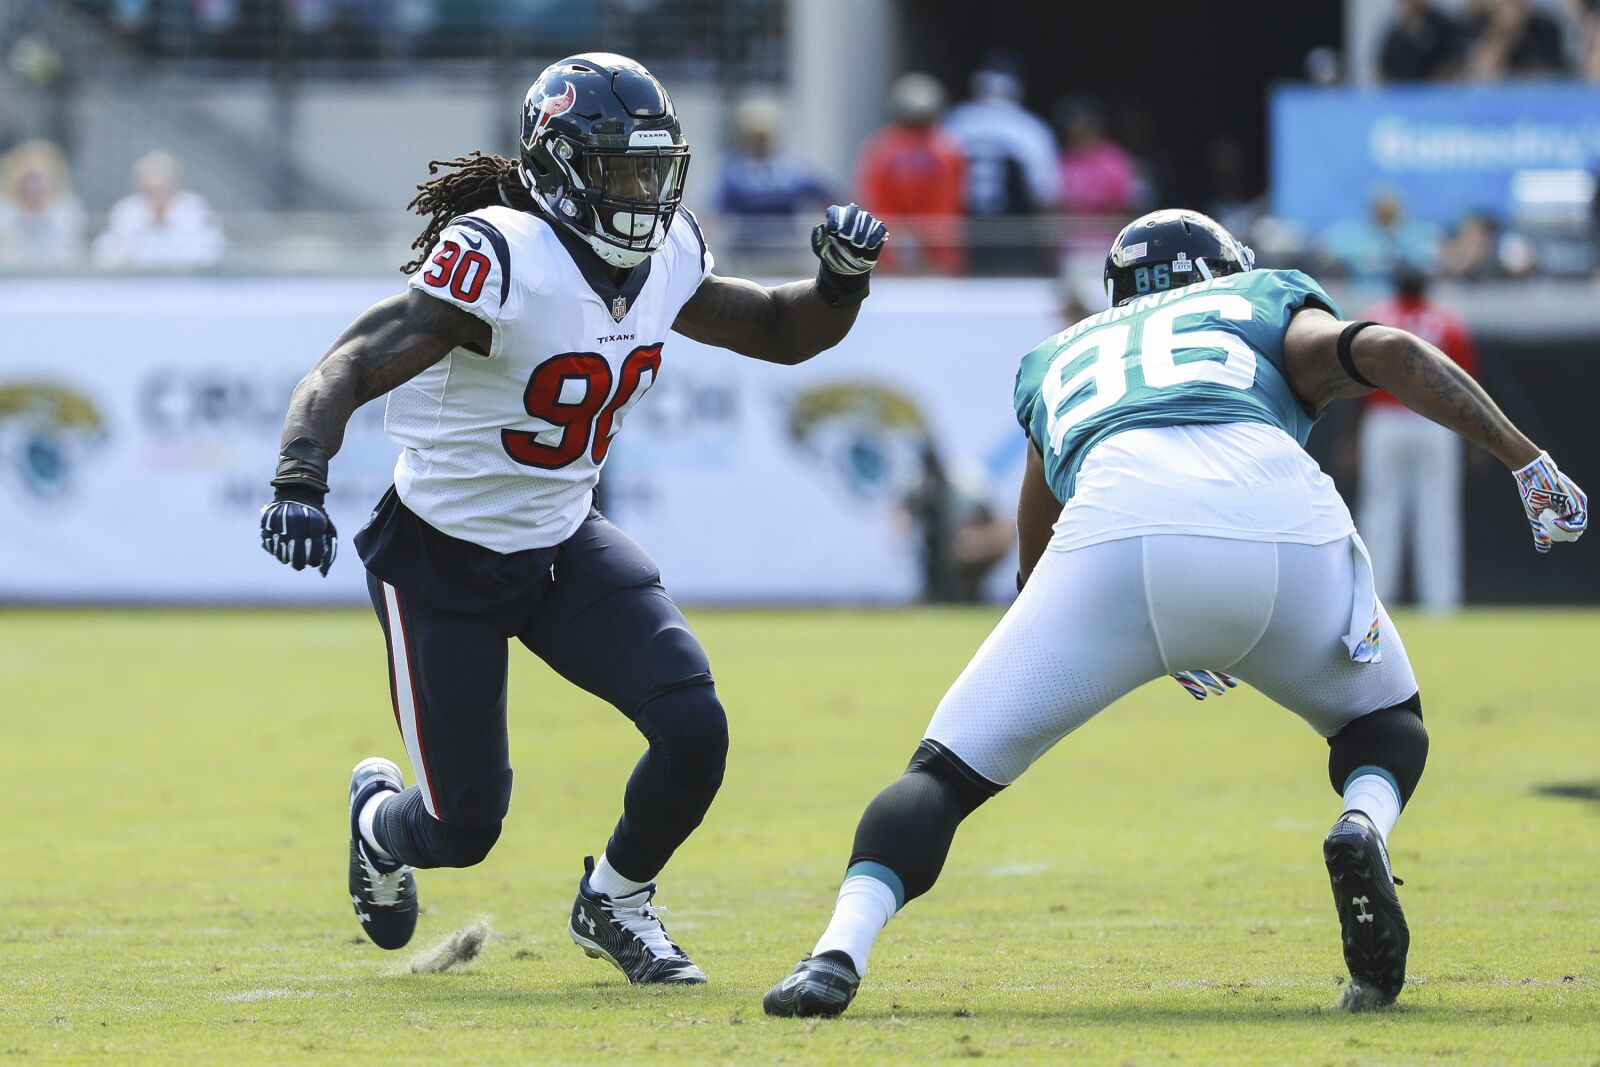 Former Eagles DE Chris Long weighs in on potential trade for Jadveon Clowney